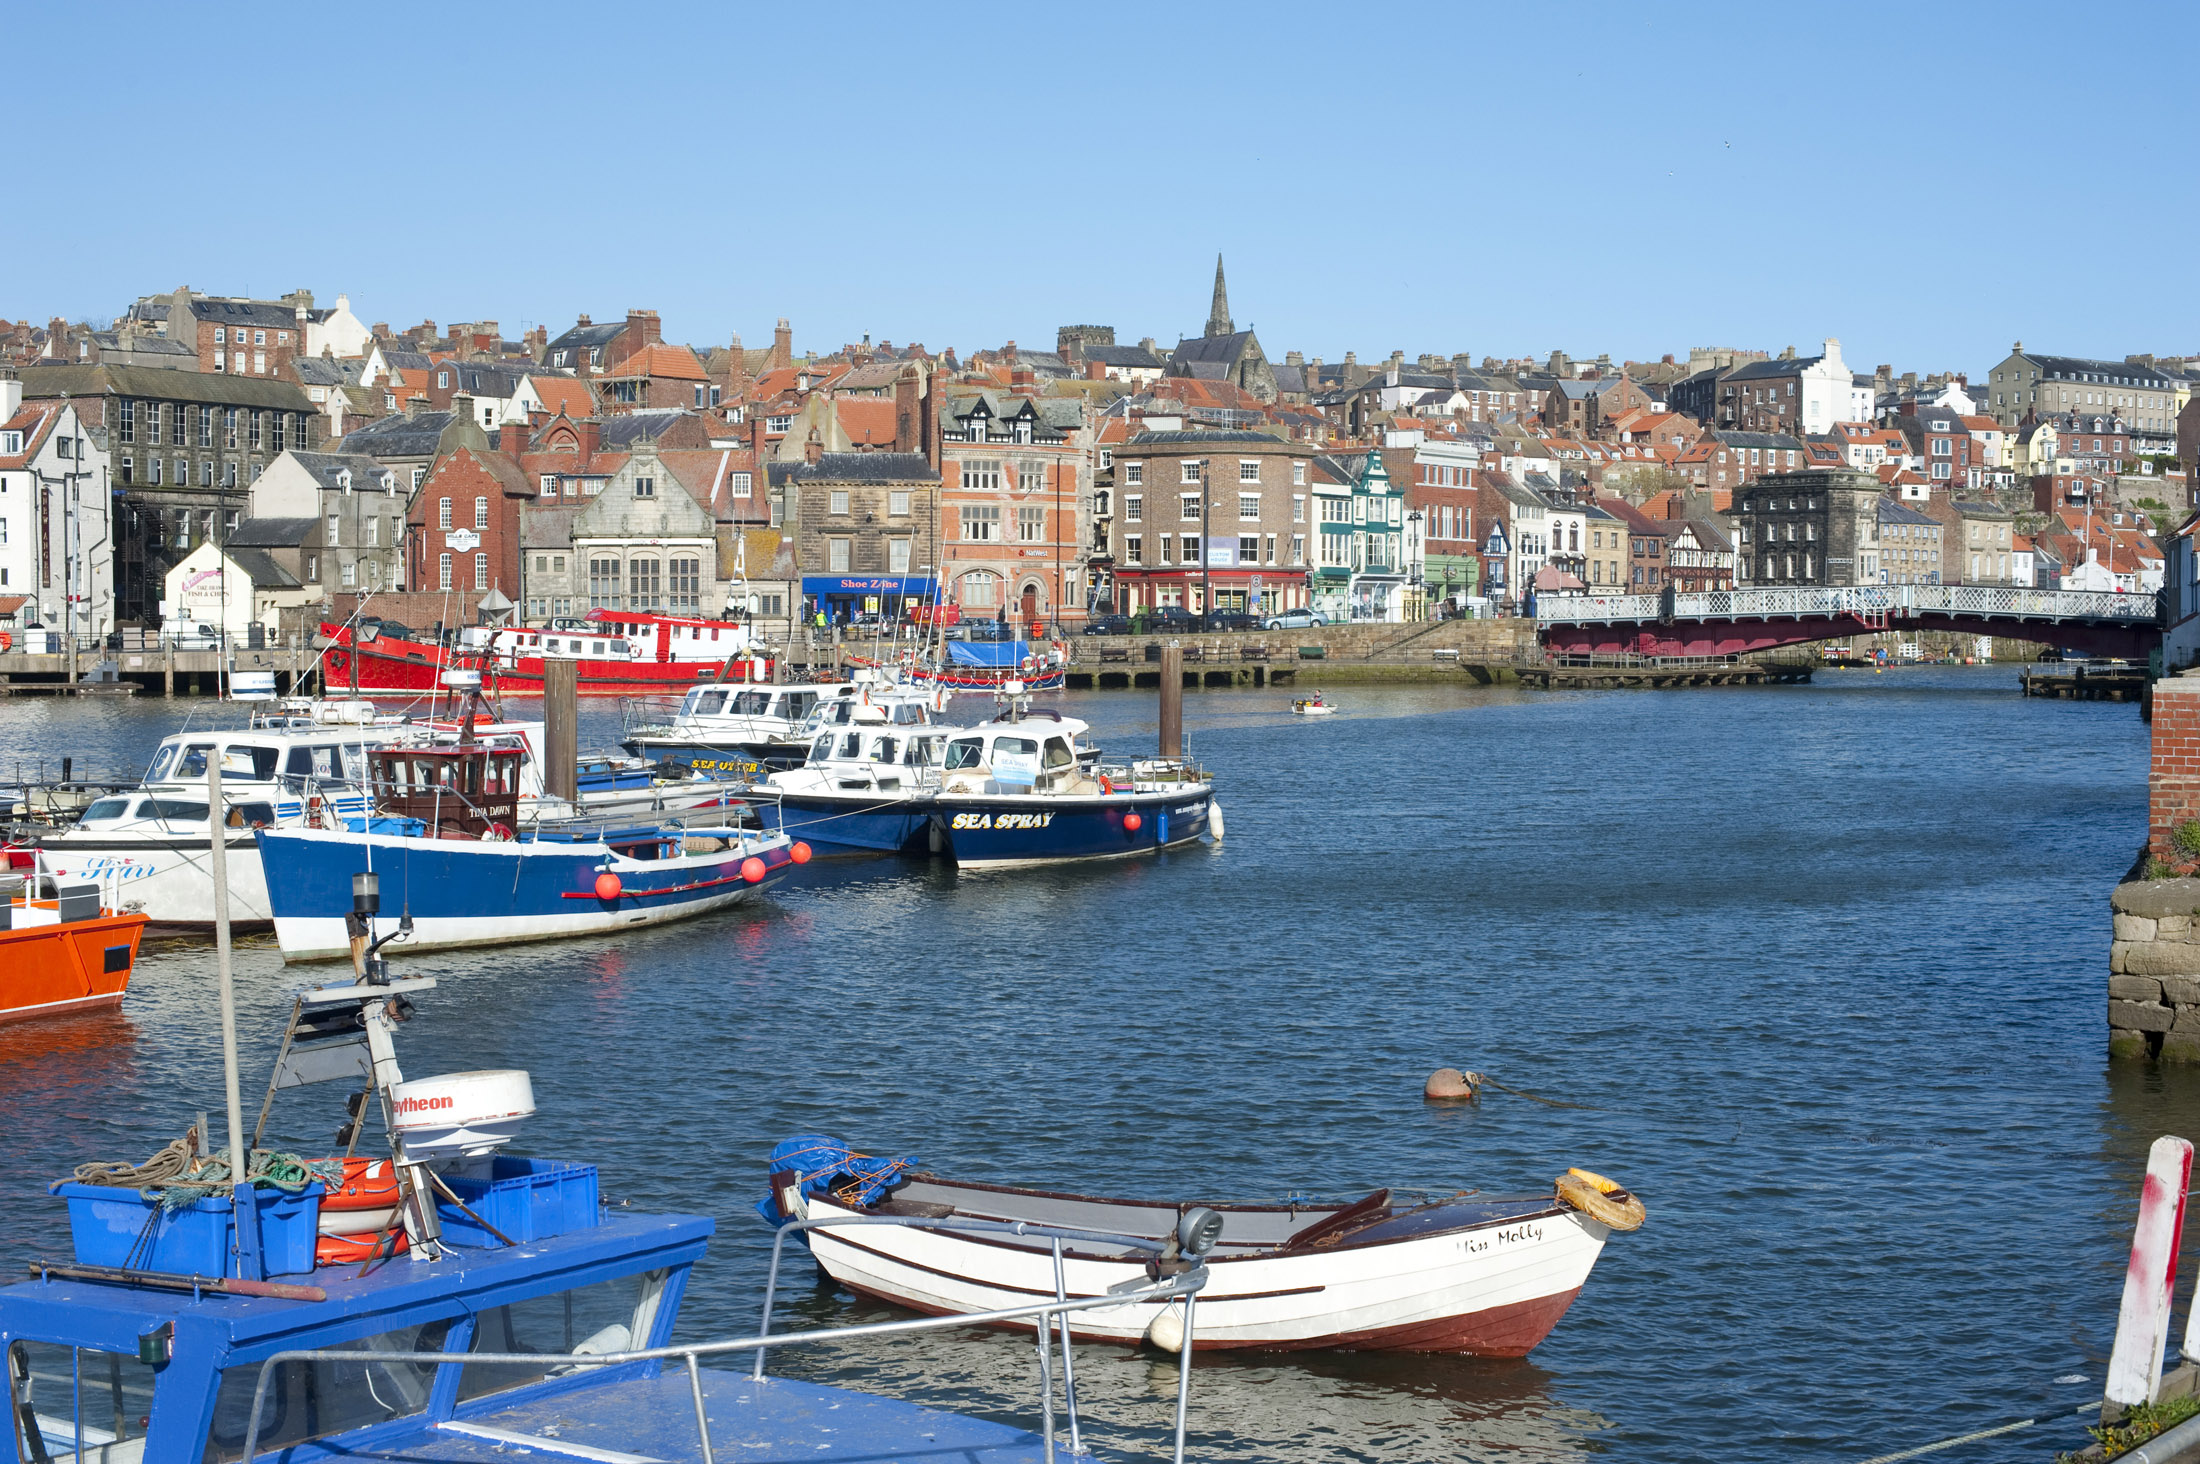 boats moored in the upper harbour of whitby, the swing bridge can be seen at the right leading to the lower harbour